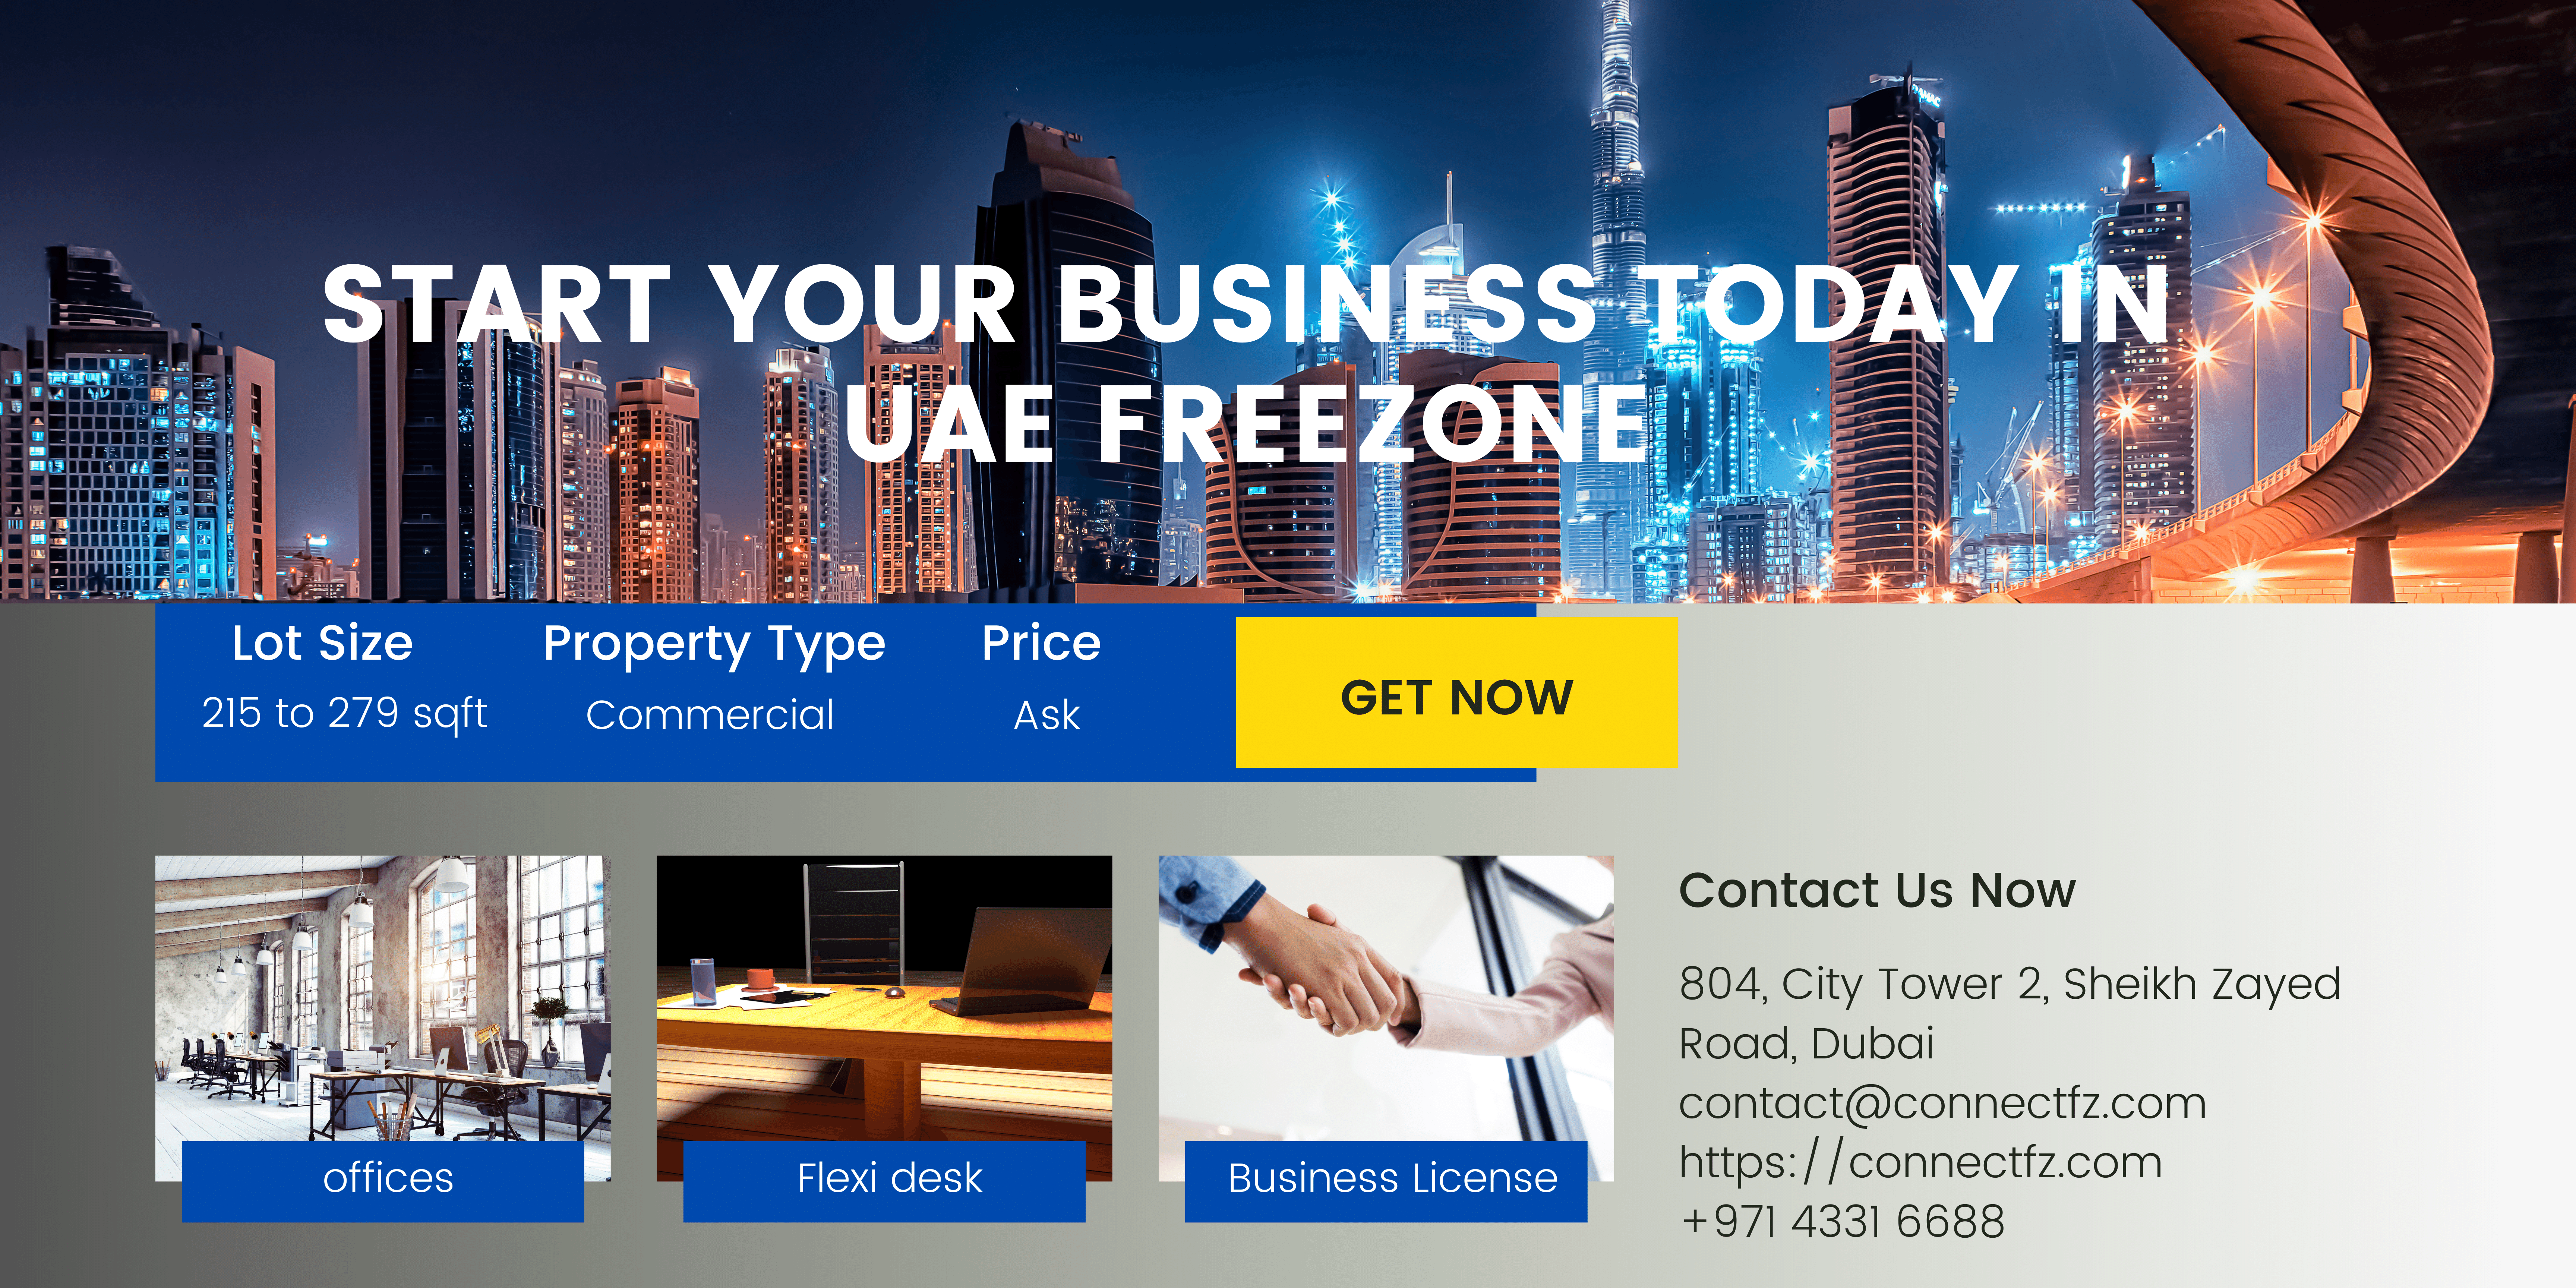 Start Your Business Today in UAE freezone